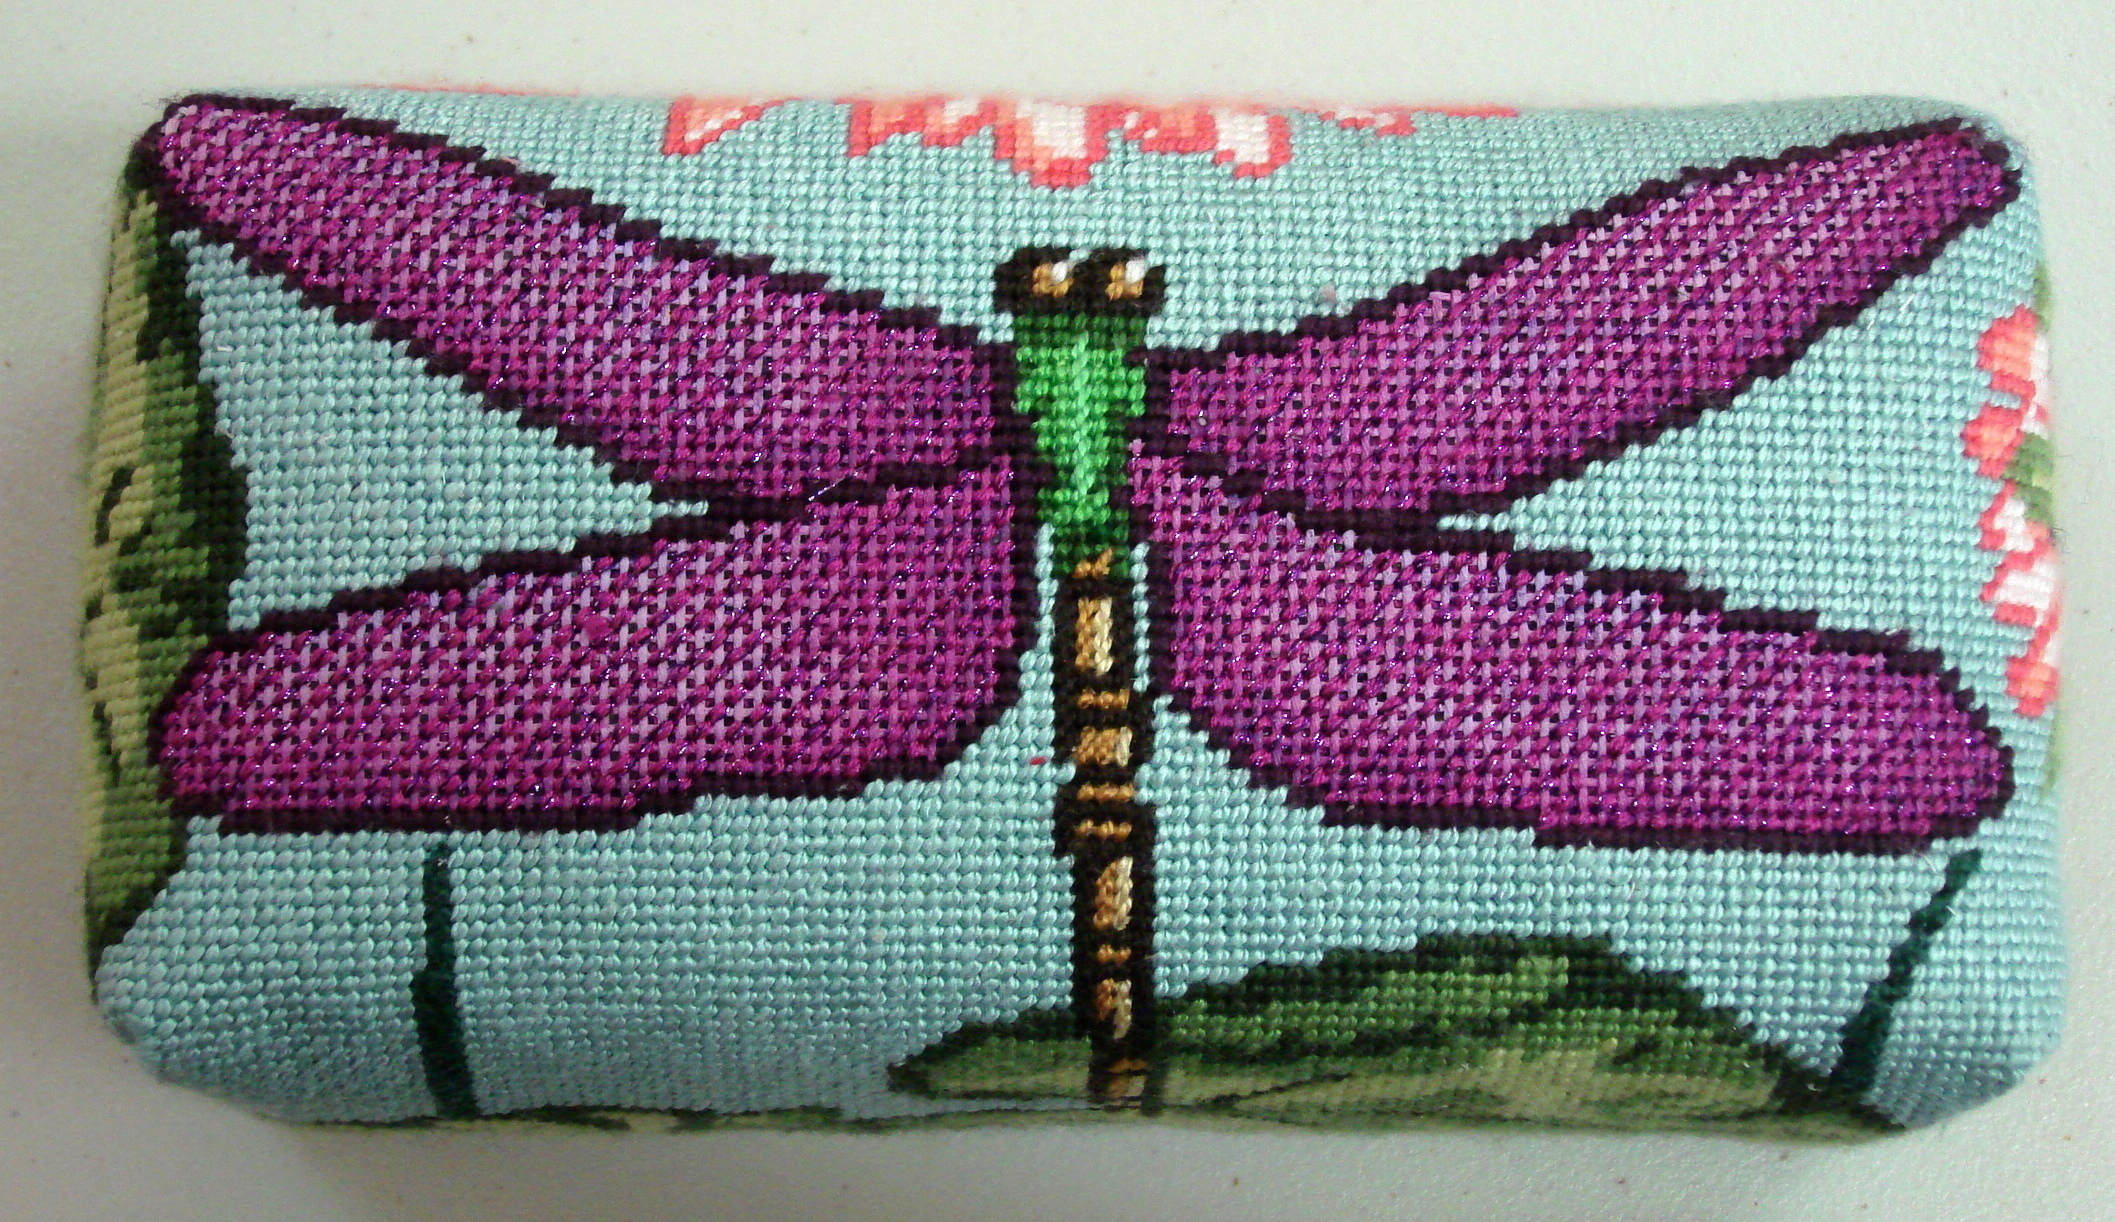 Dragonfly brick cover    (handpainted by Gayla Elliot)